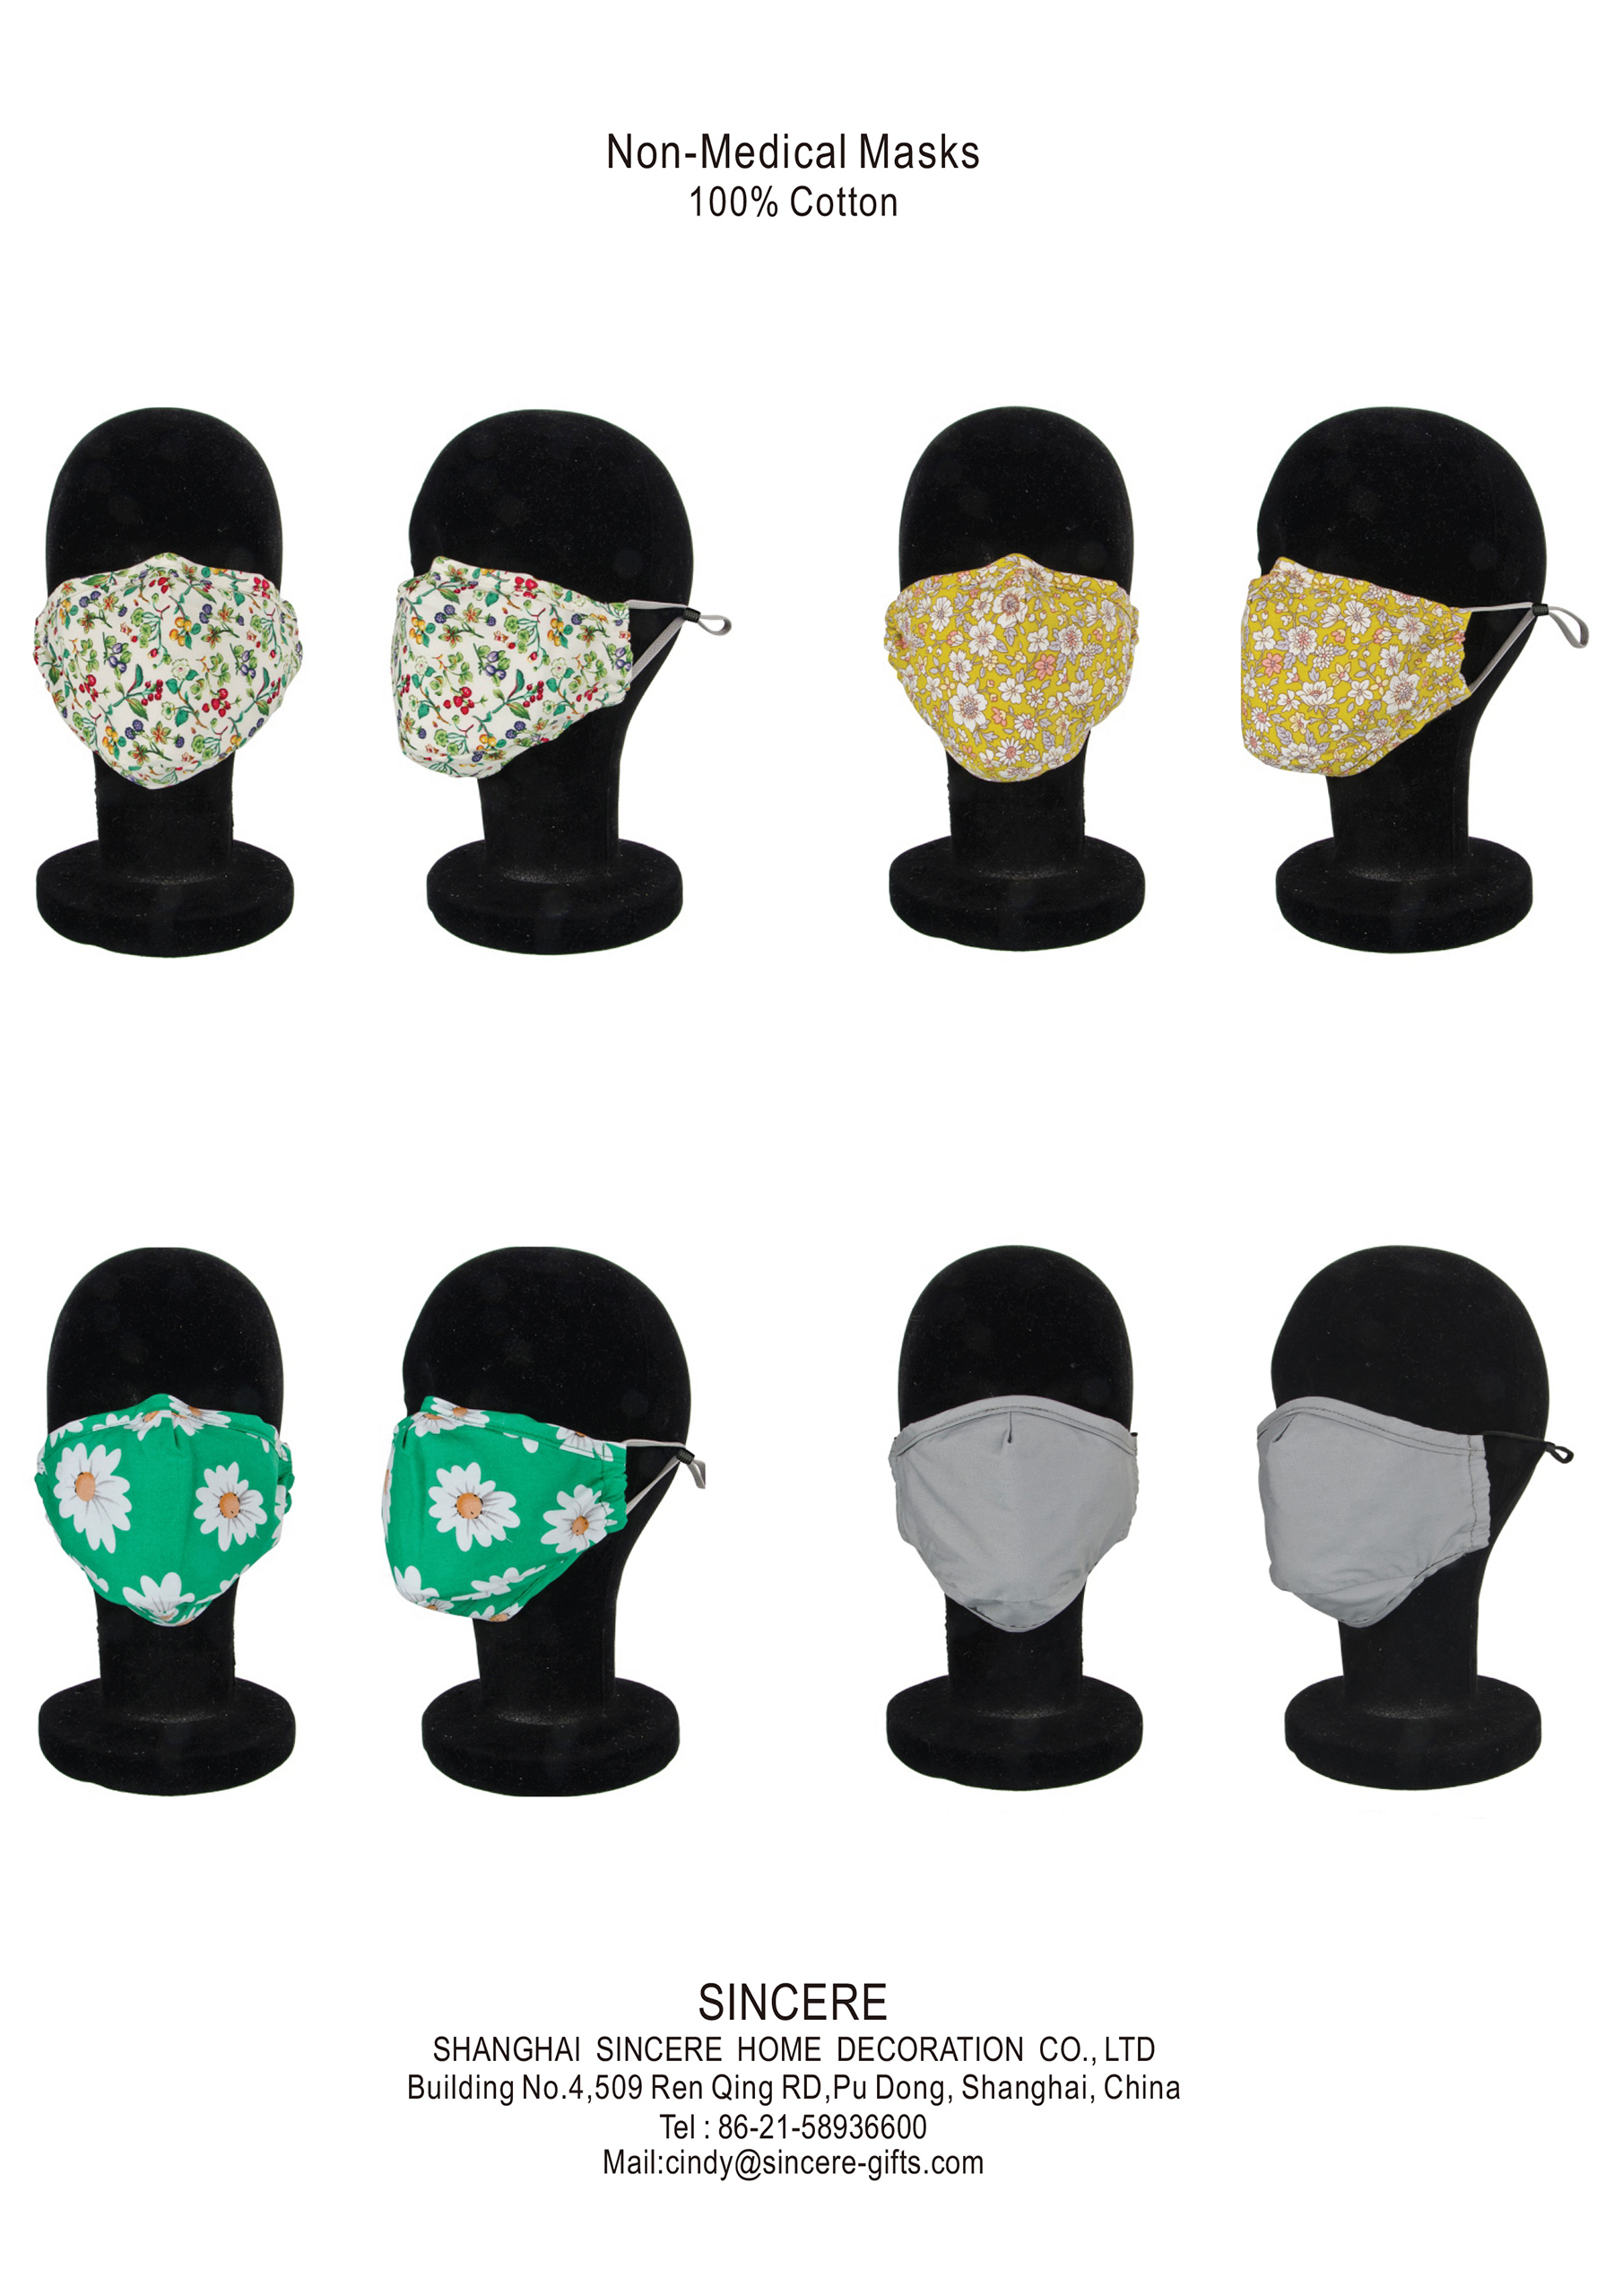 Non-Medical Masks 02